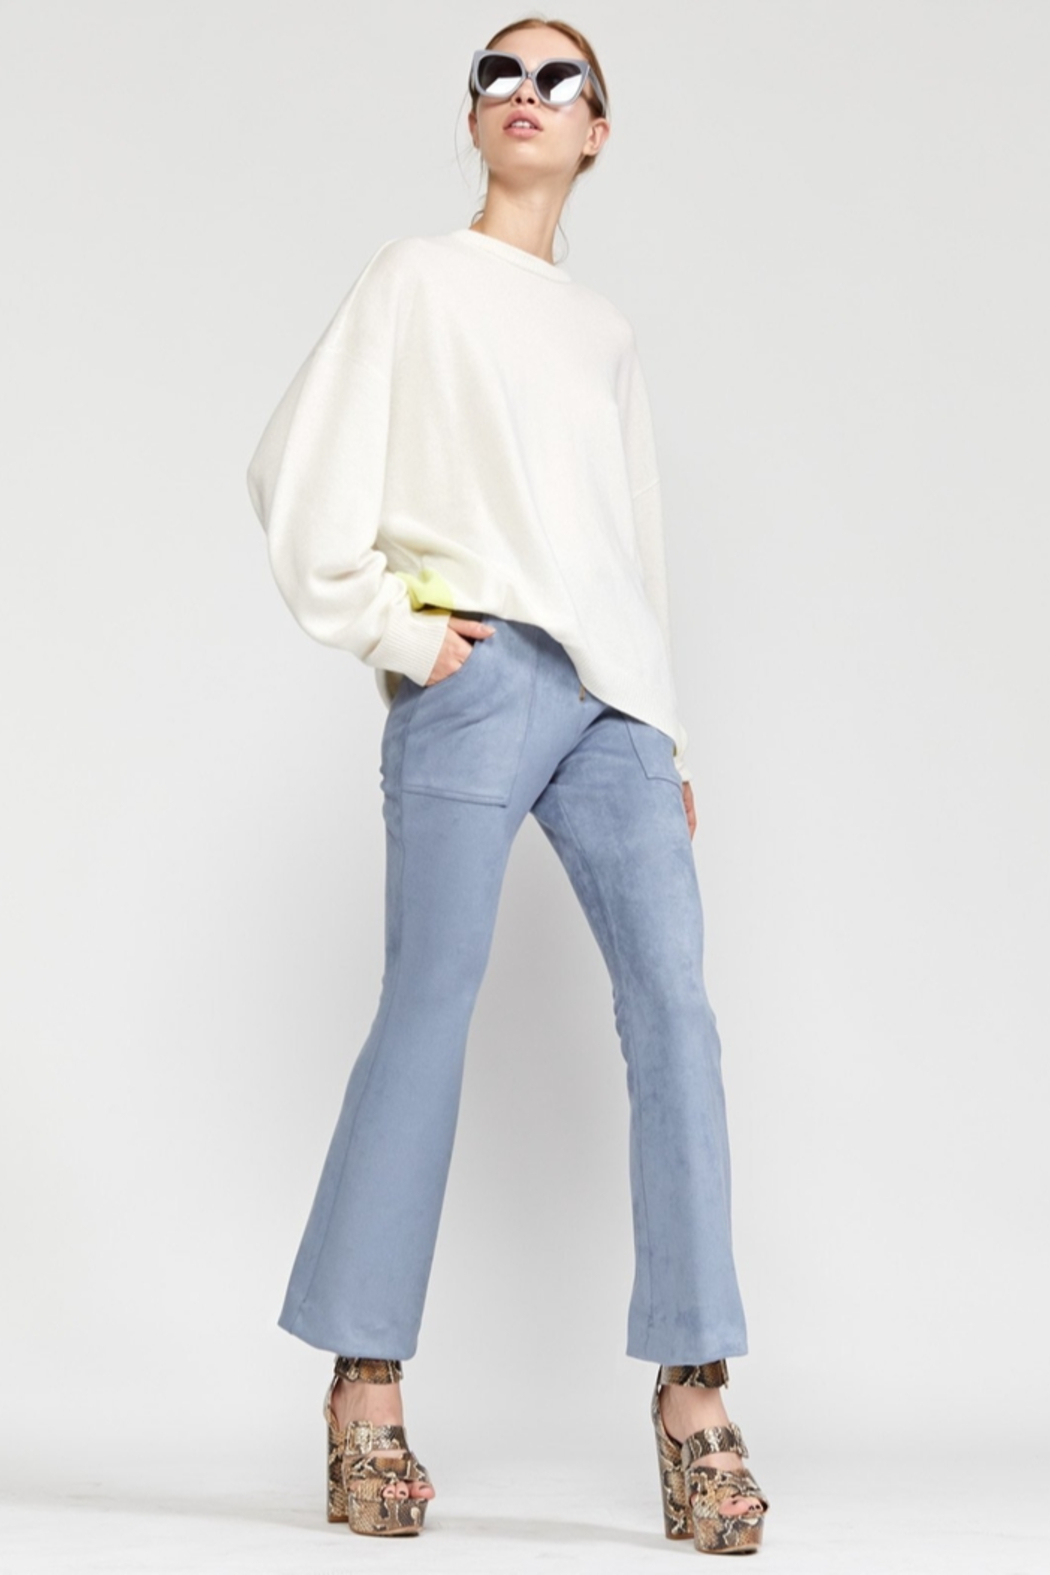 Cynthia Rowley Nadia Stretch Faux-suede Flared Pant - Side Cropped Image